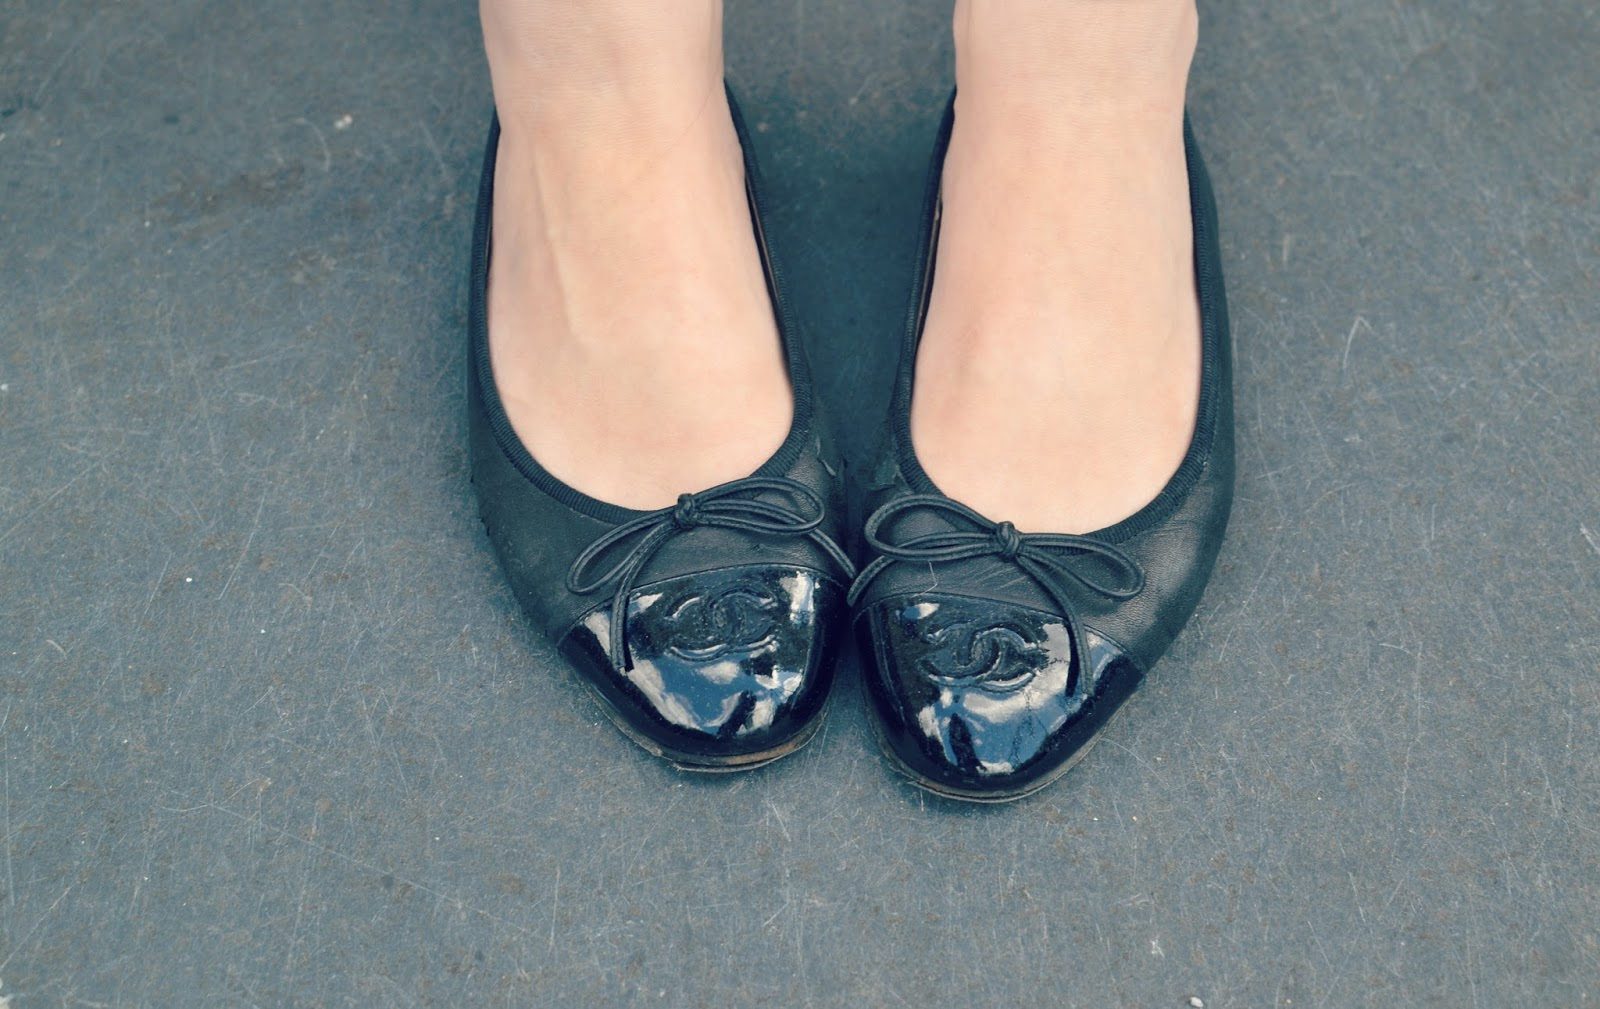 chanel shoes ballet pumps alexa chung